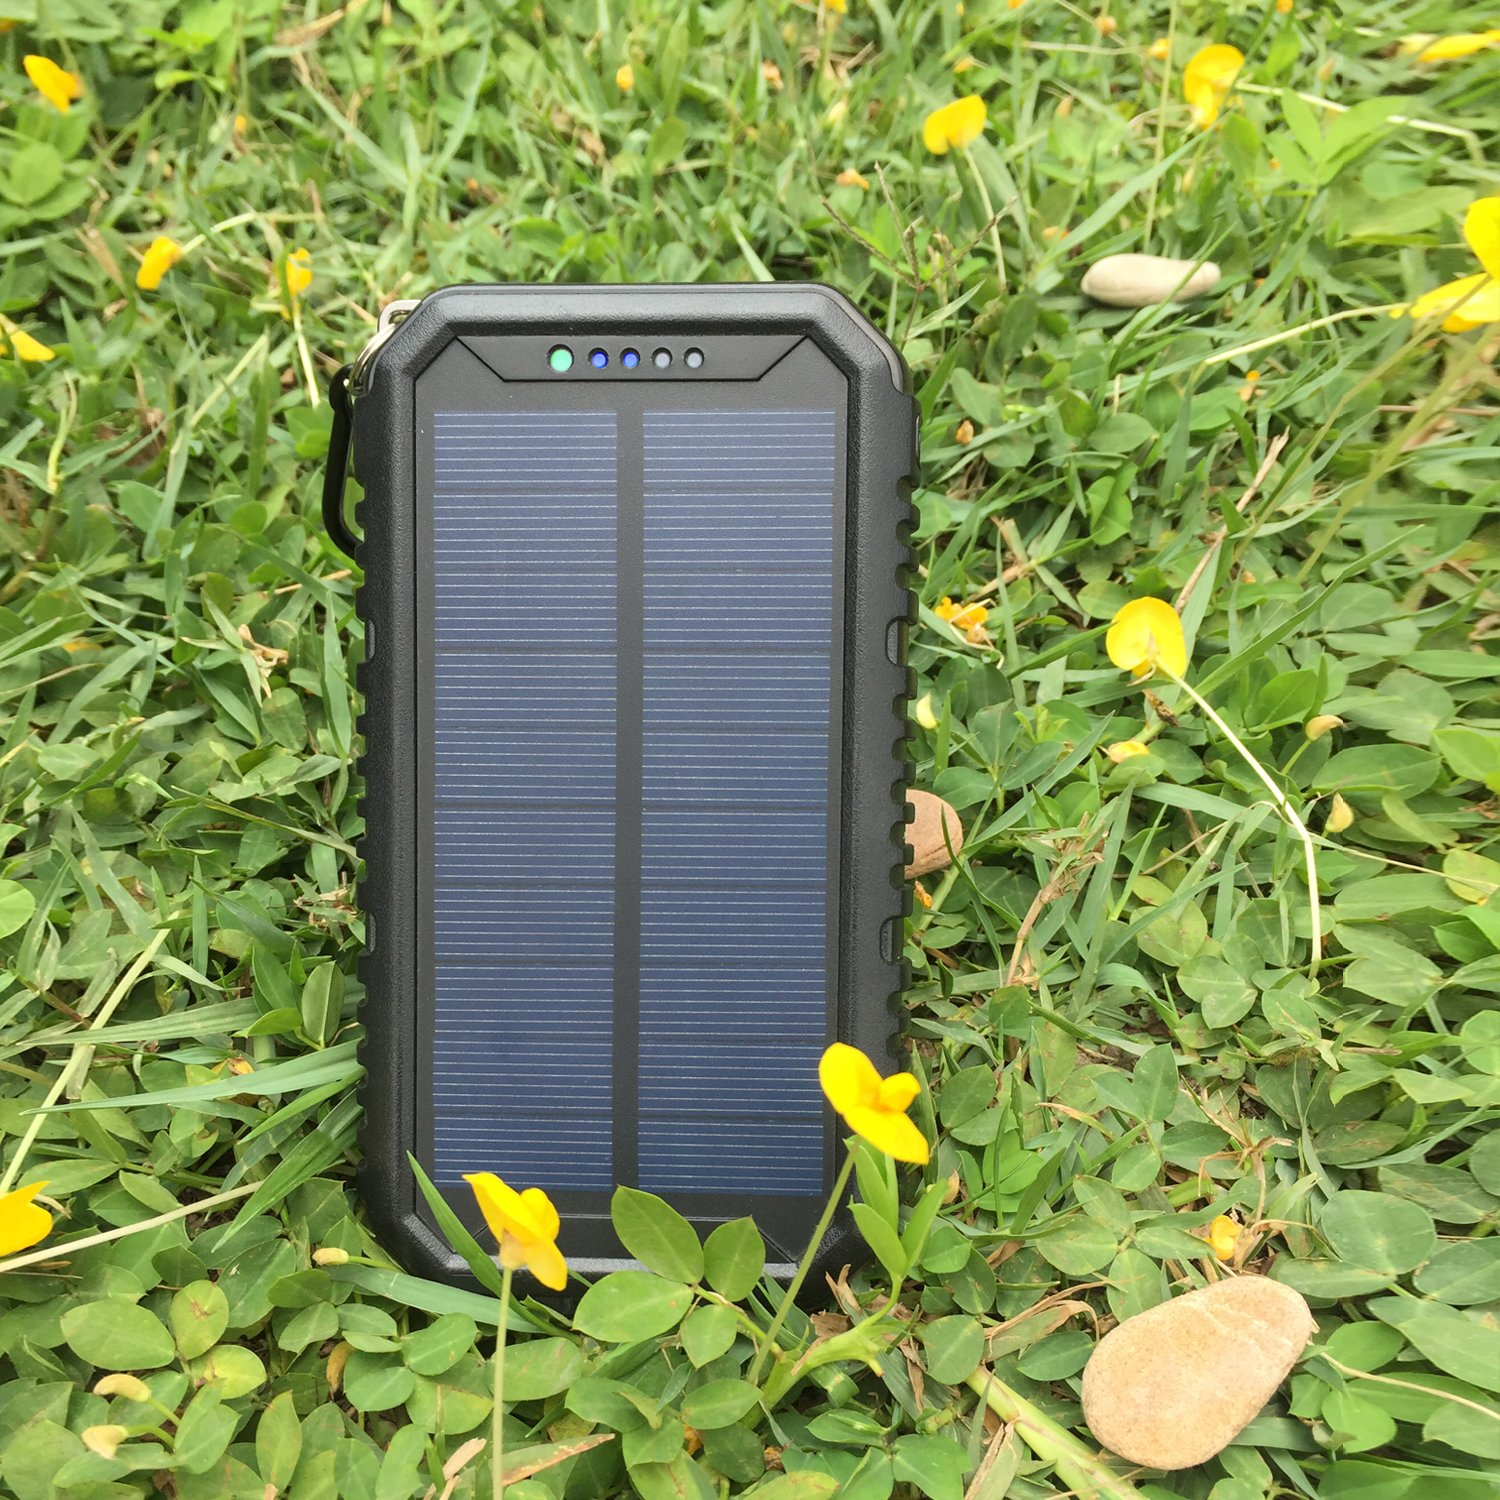 Solar Charger 12000mAh WBPINE Portable Solar Power Bank Shockproof/Dustproof/Waterproof Dual USB 2 LED Flashlights Cellphone More by WBPINE (Image #5)